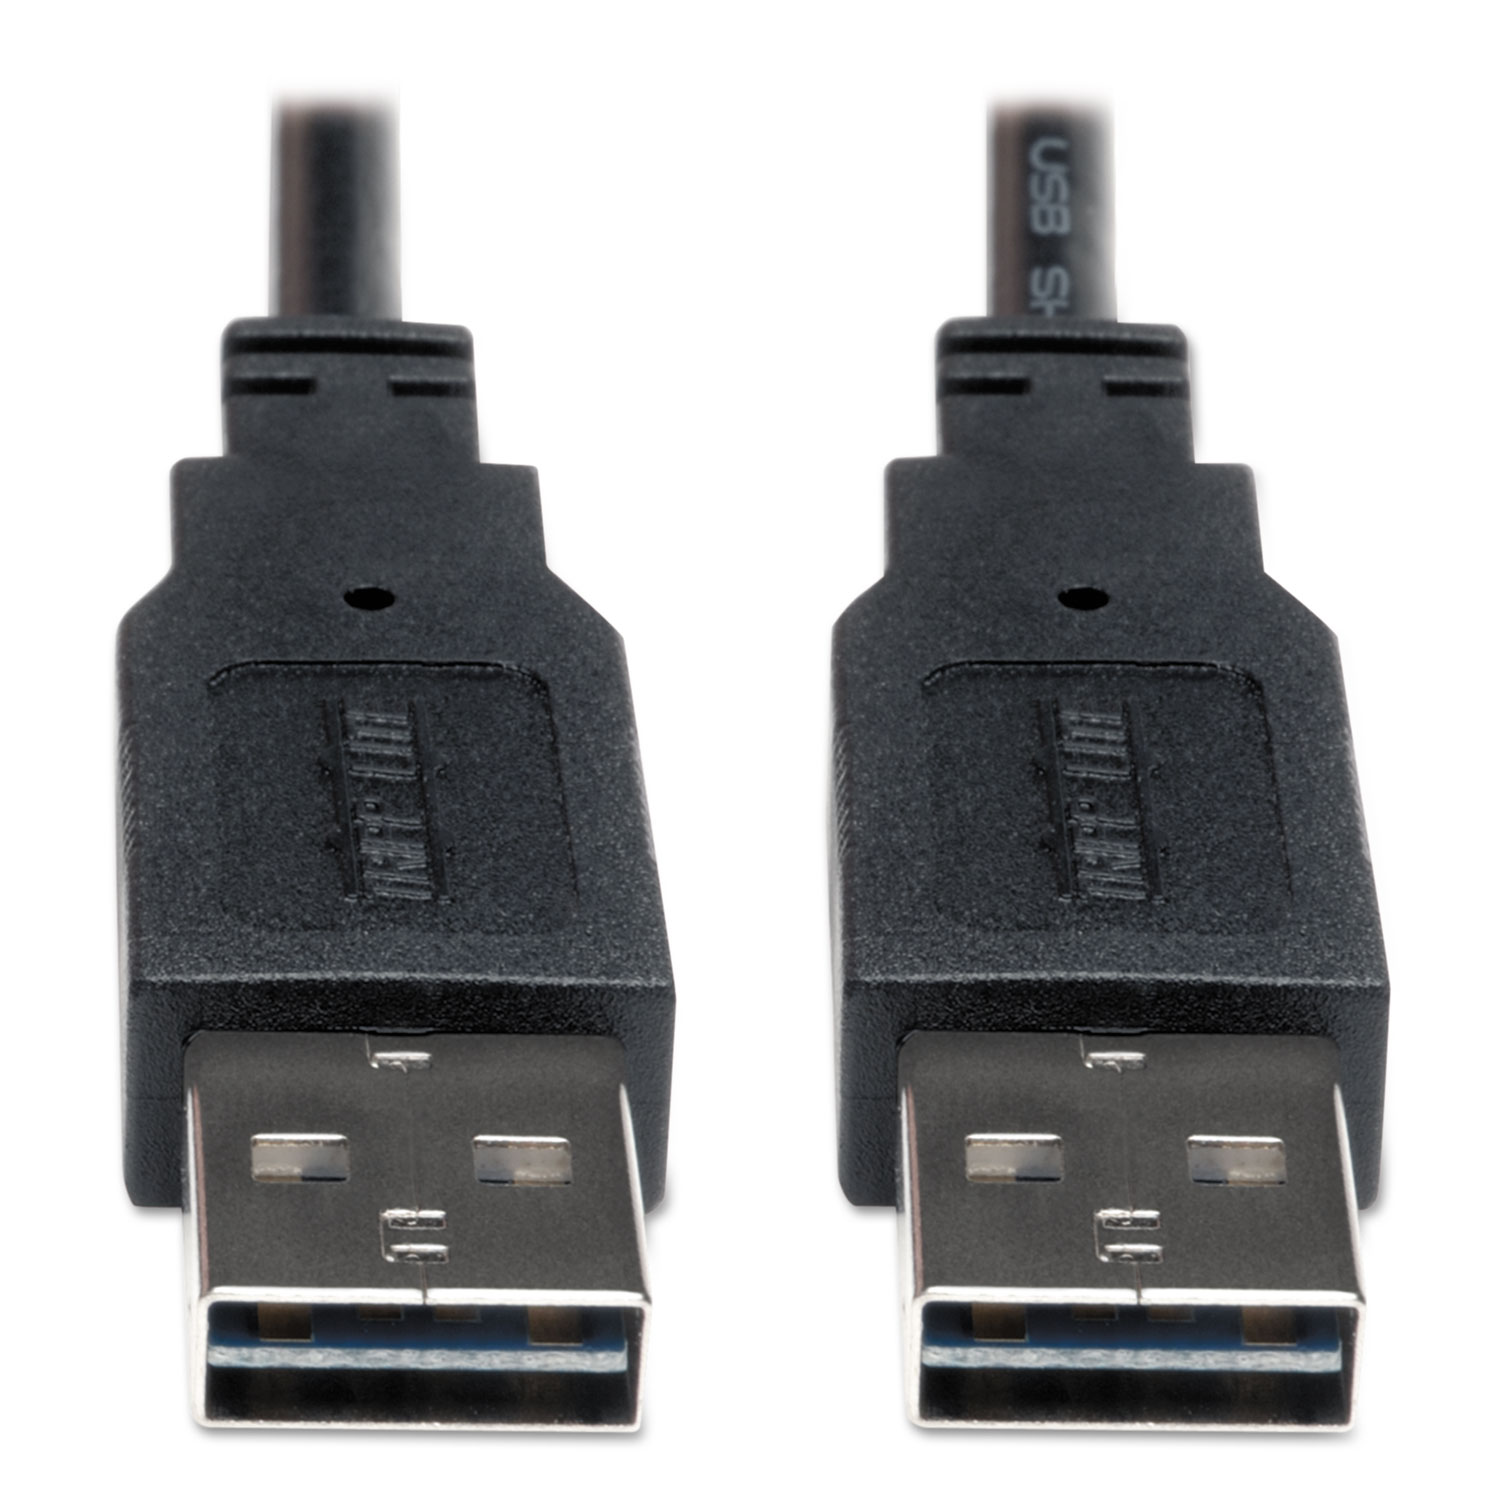 Universal Reversible USB 2.0 Cable, Reversible A to Reversible A (M/M), 6 ft.